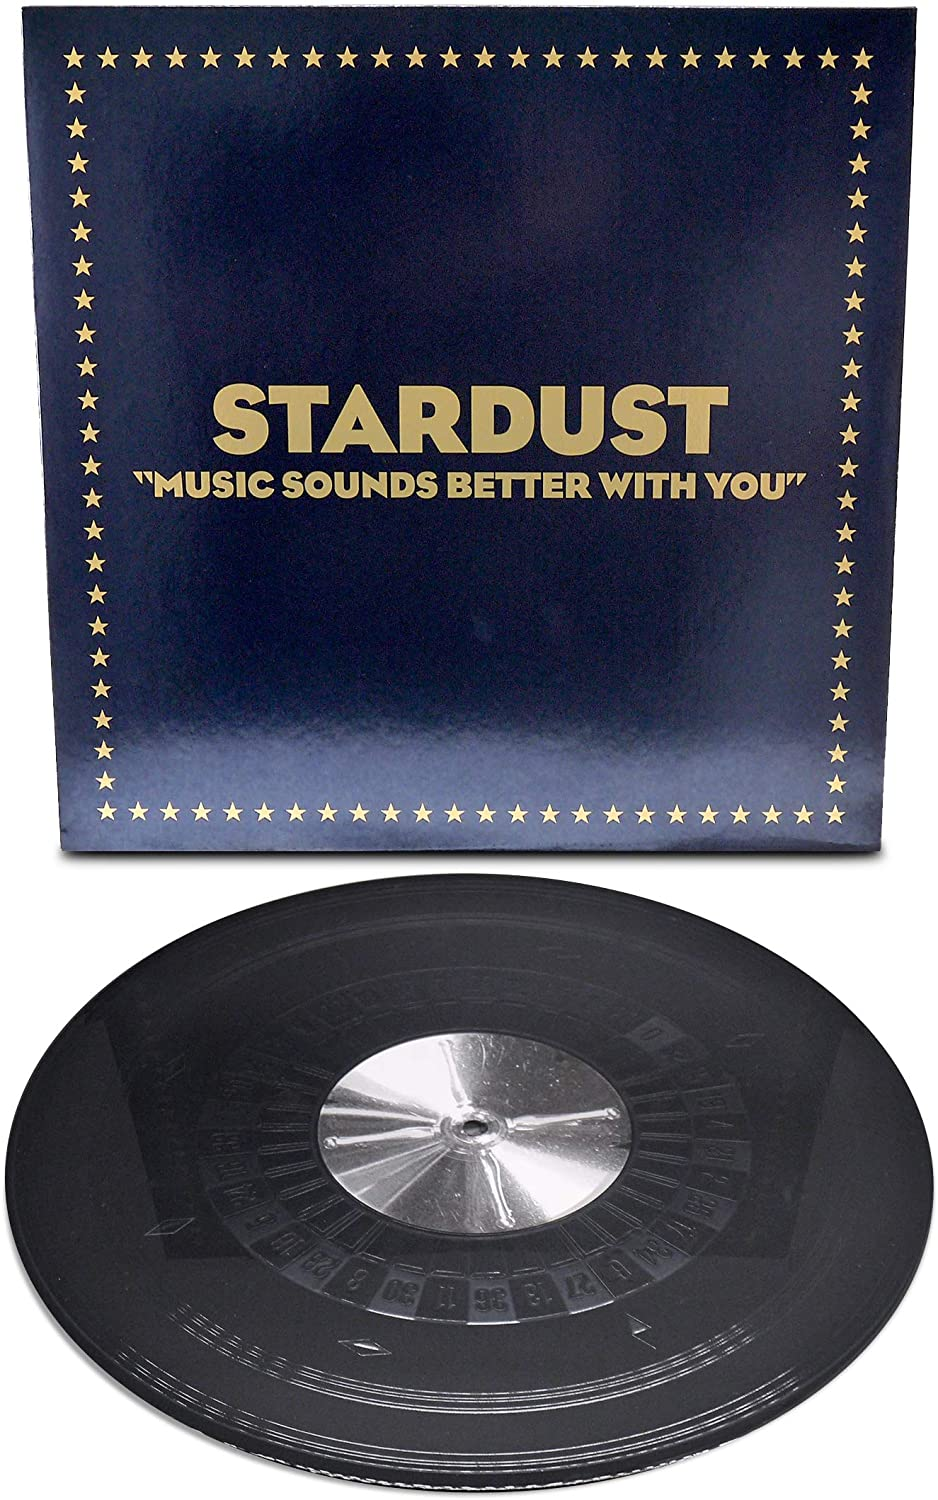 Stardust/Music Sounds Better With You (Limited 20th Anniversary) [LP]